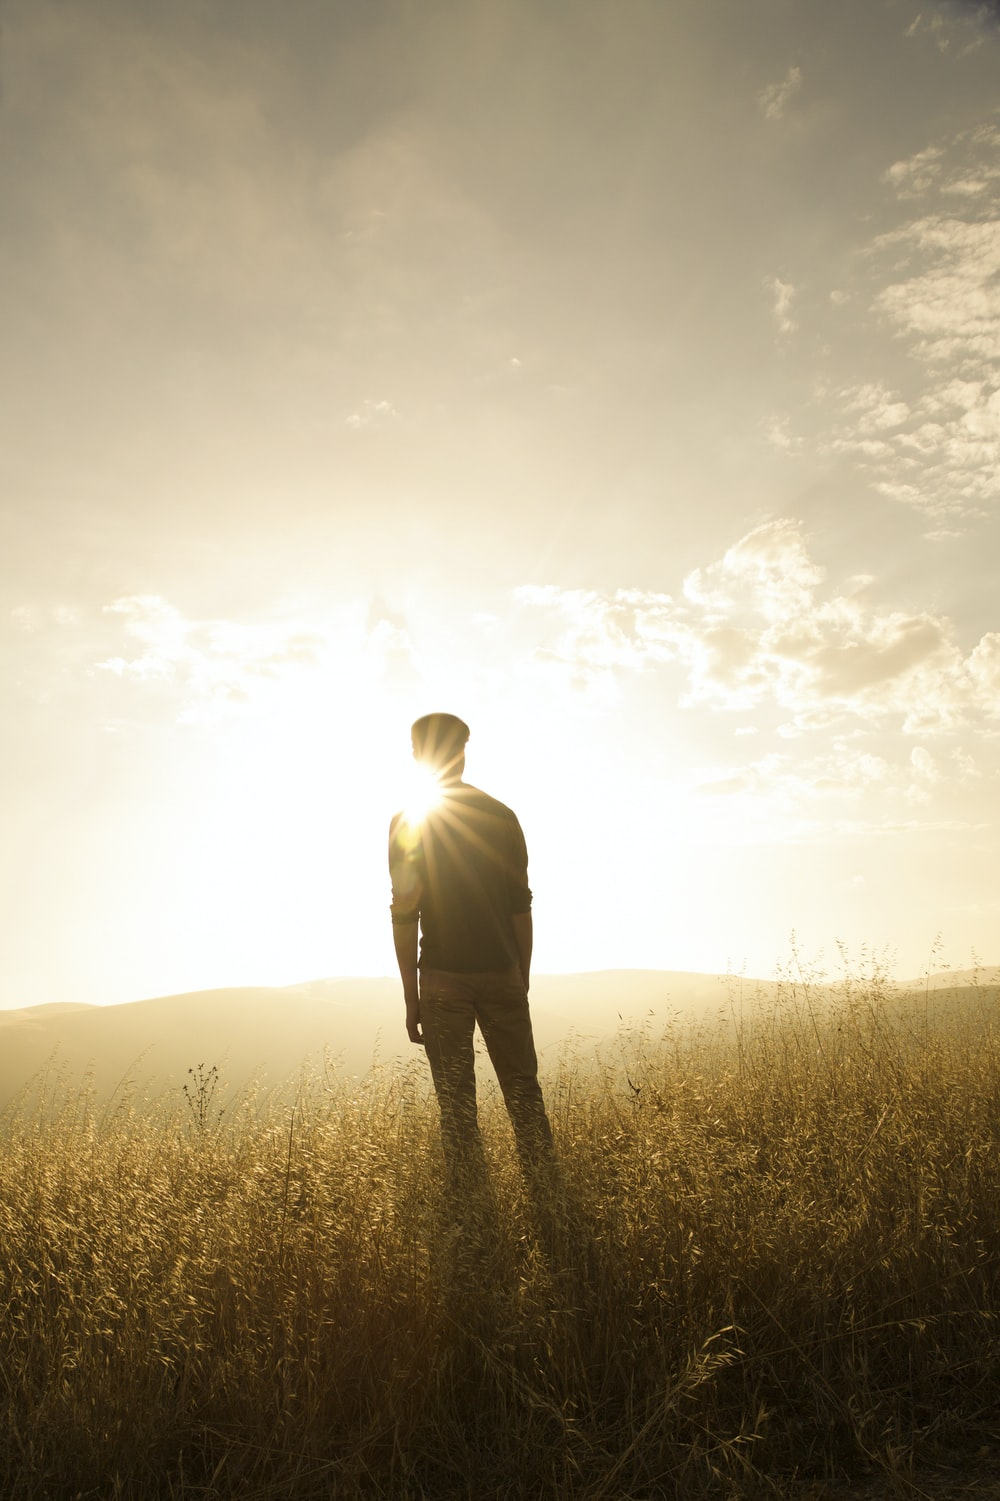 silhouette photography of man standing on grass field during golden hour